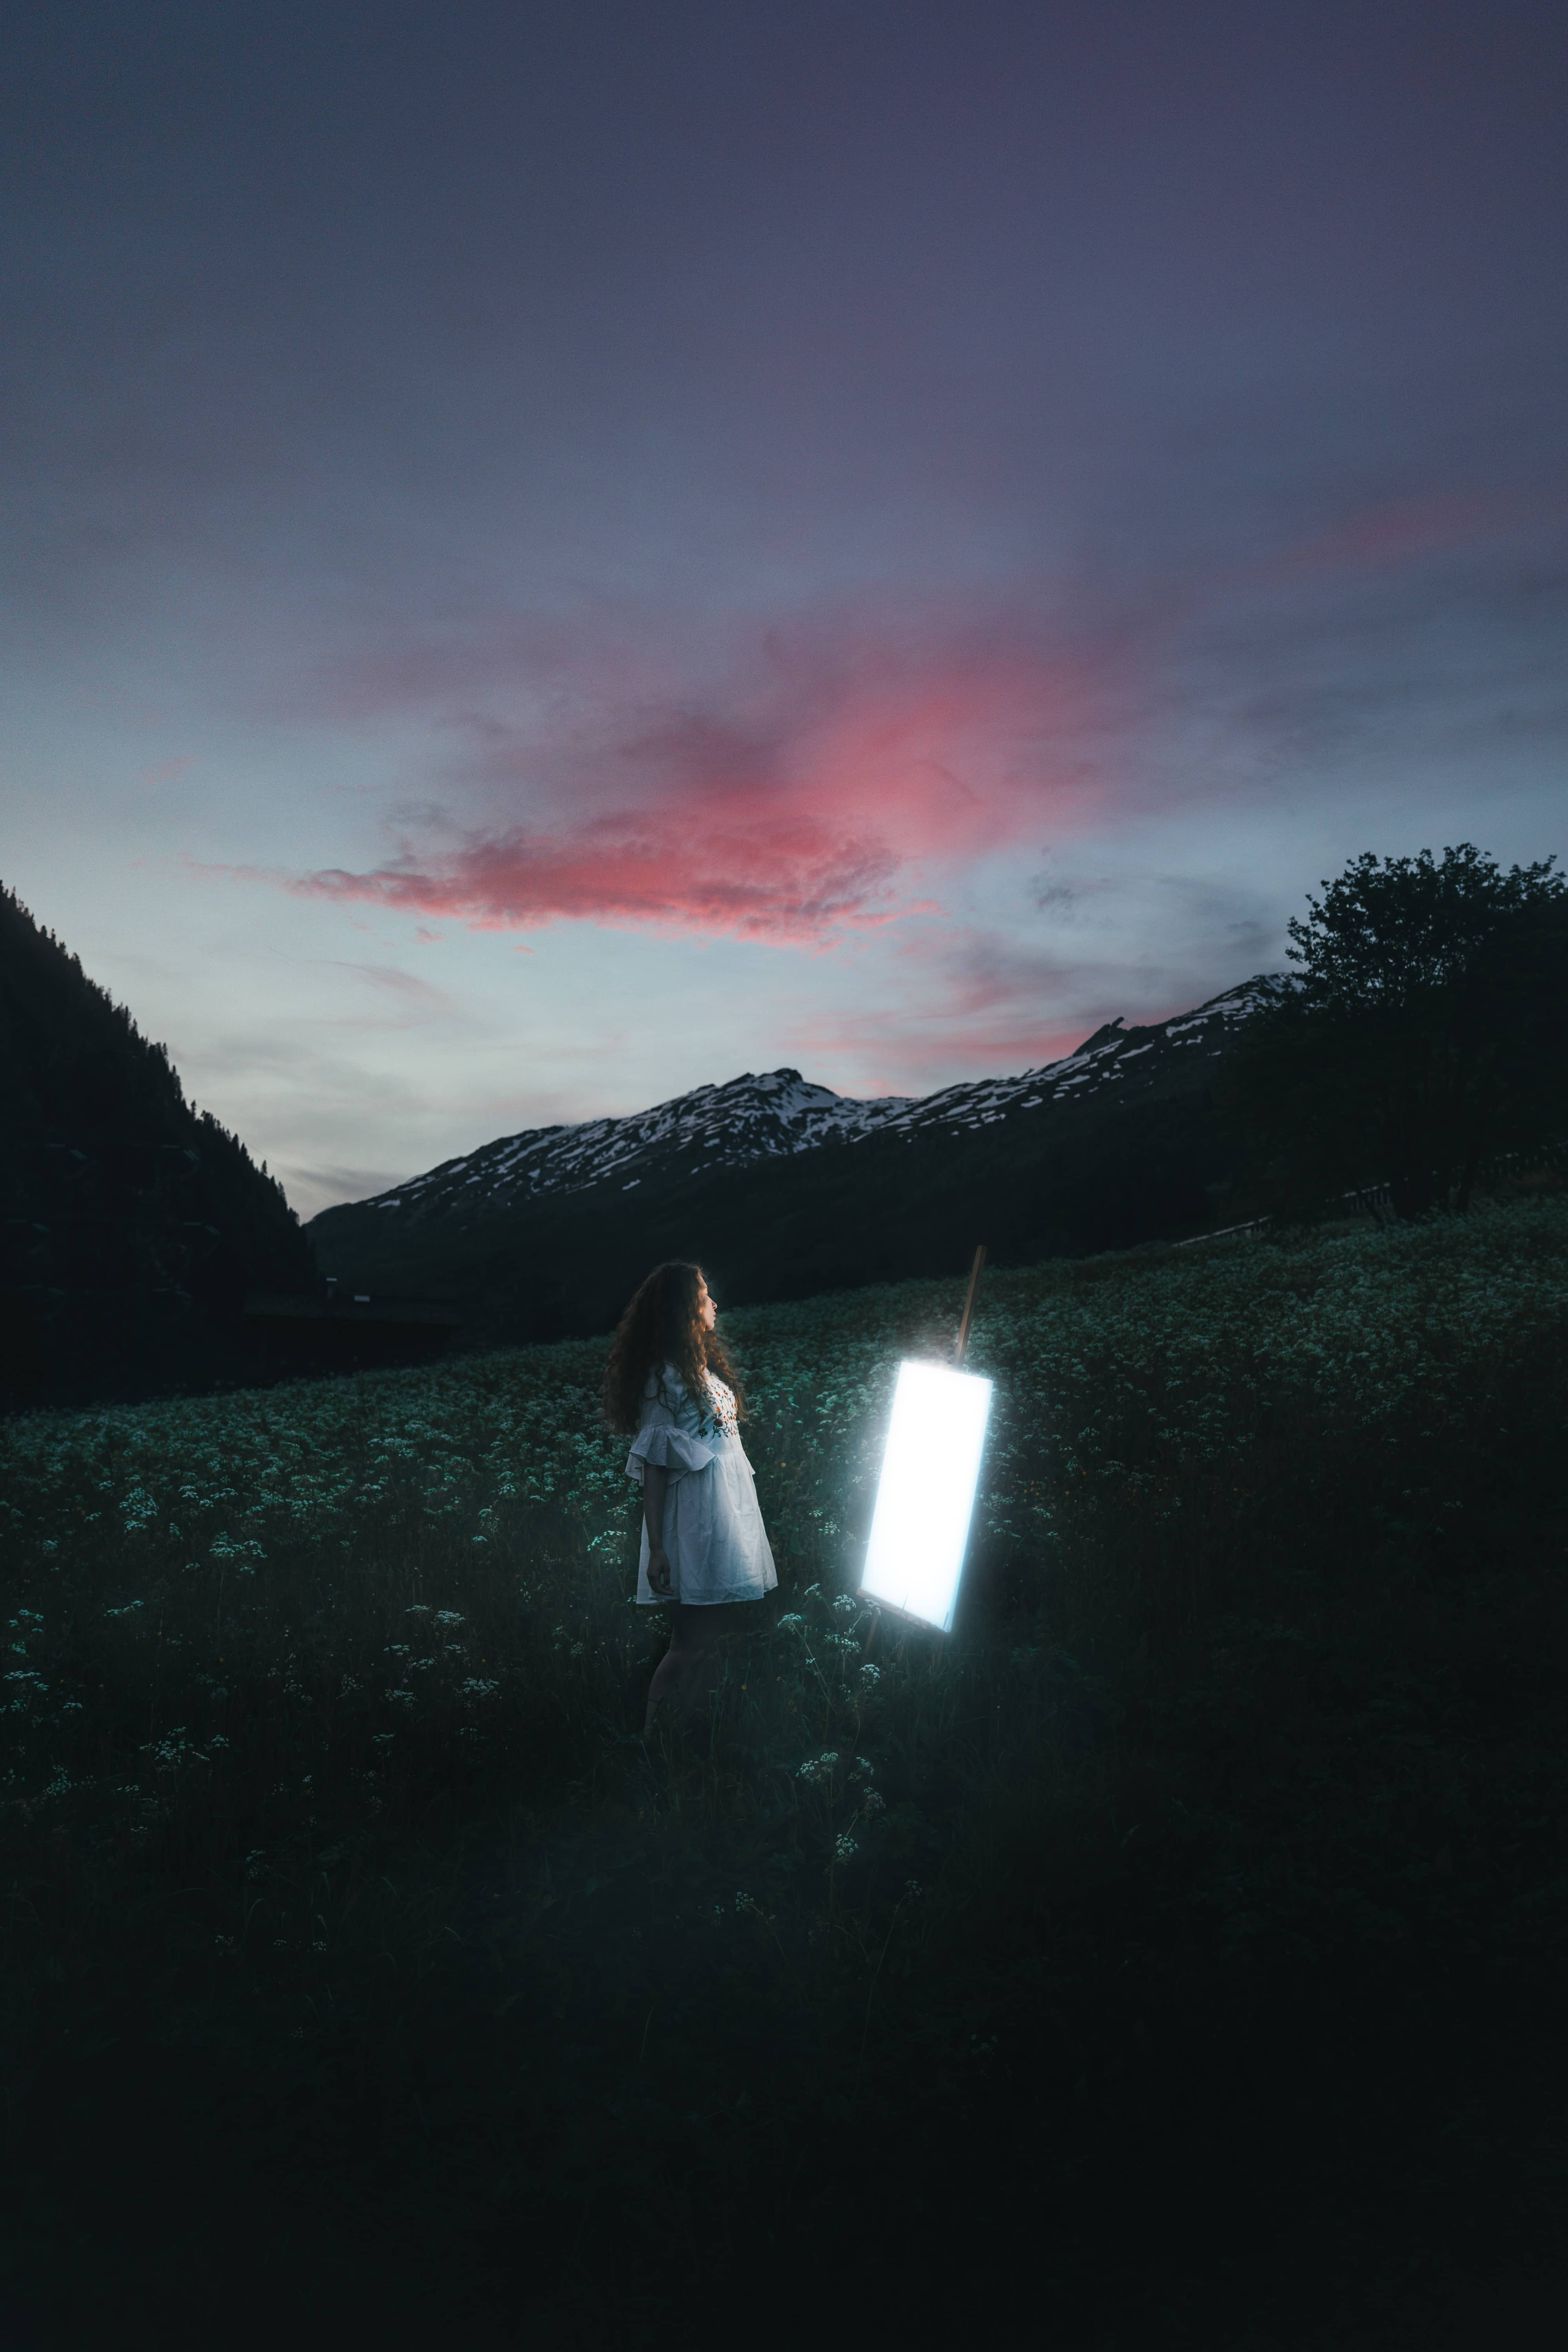 A girl standing in front of a shining screen surrounded by mountains